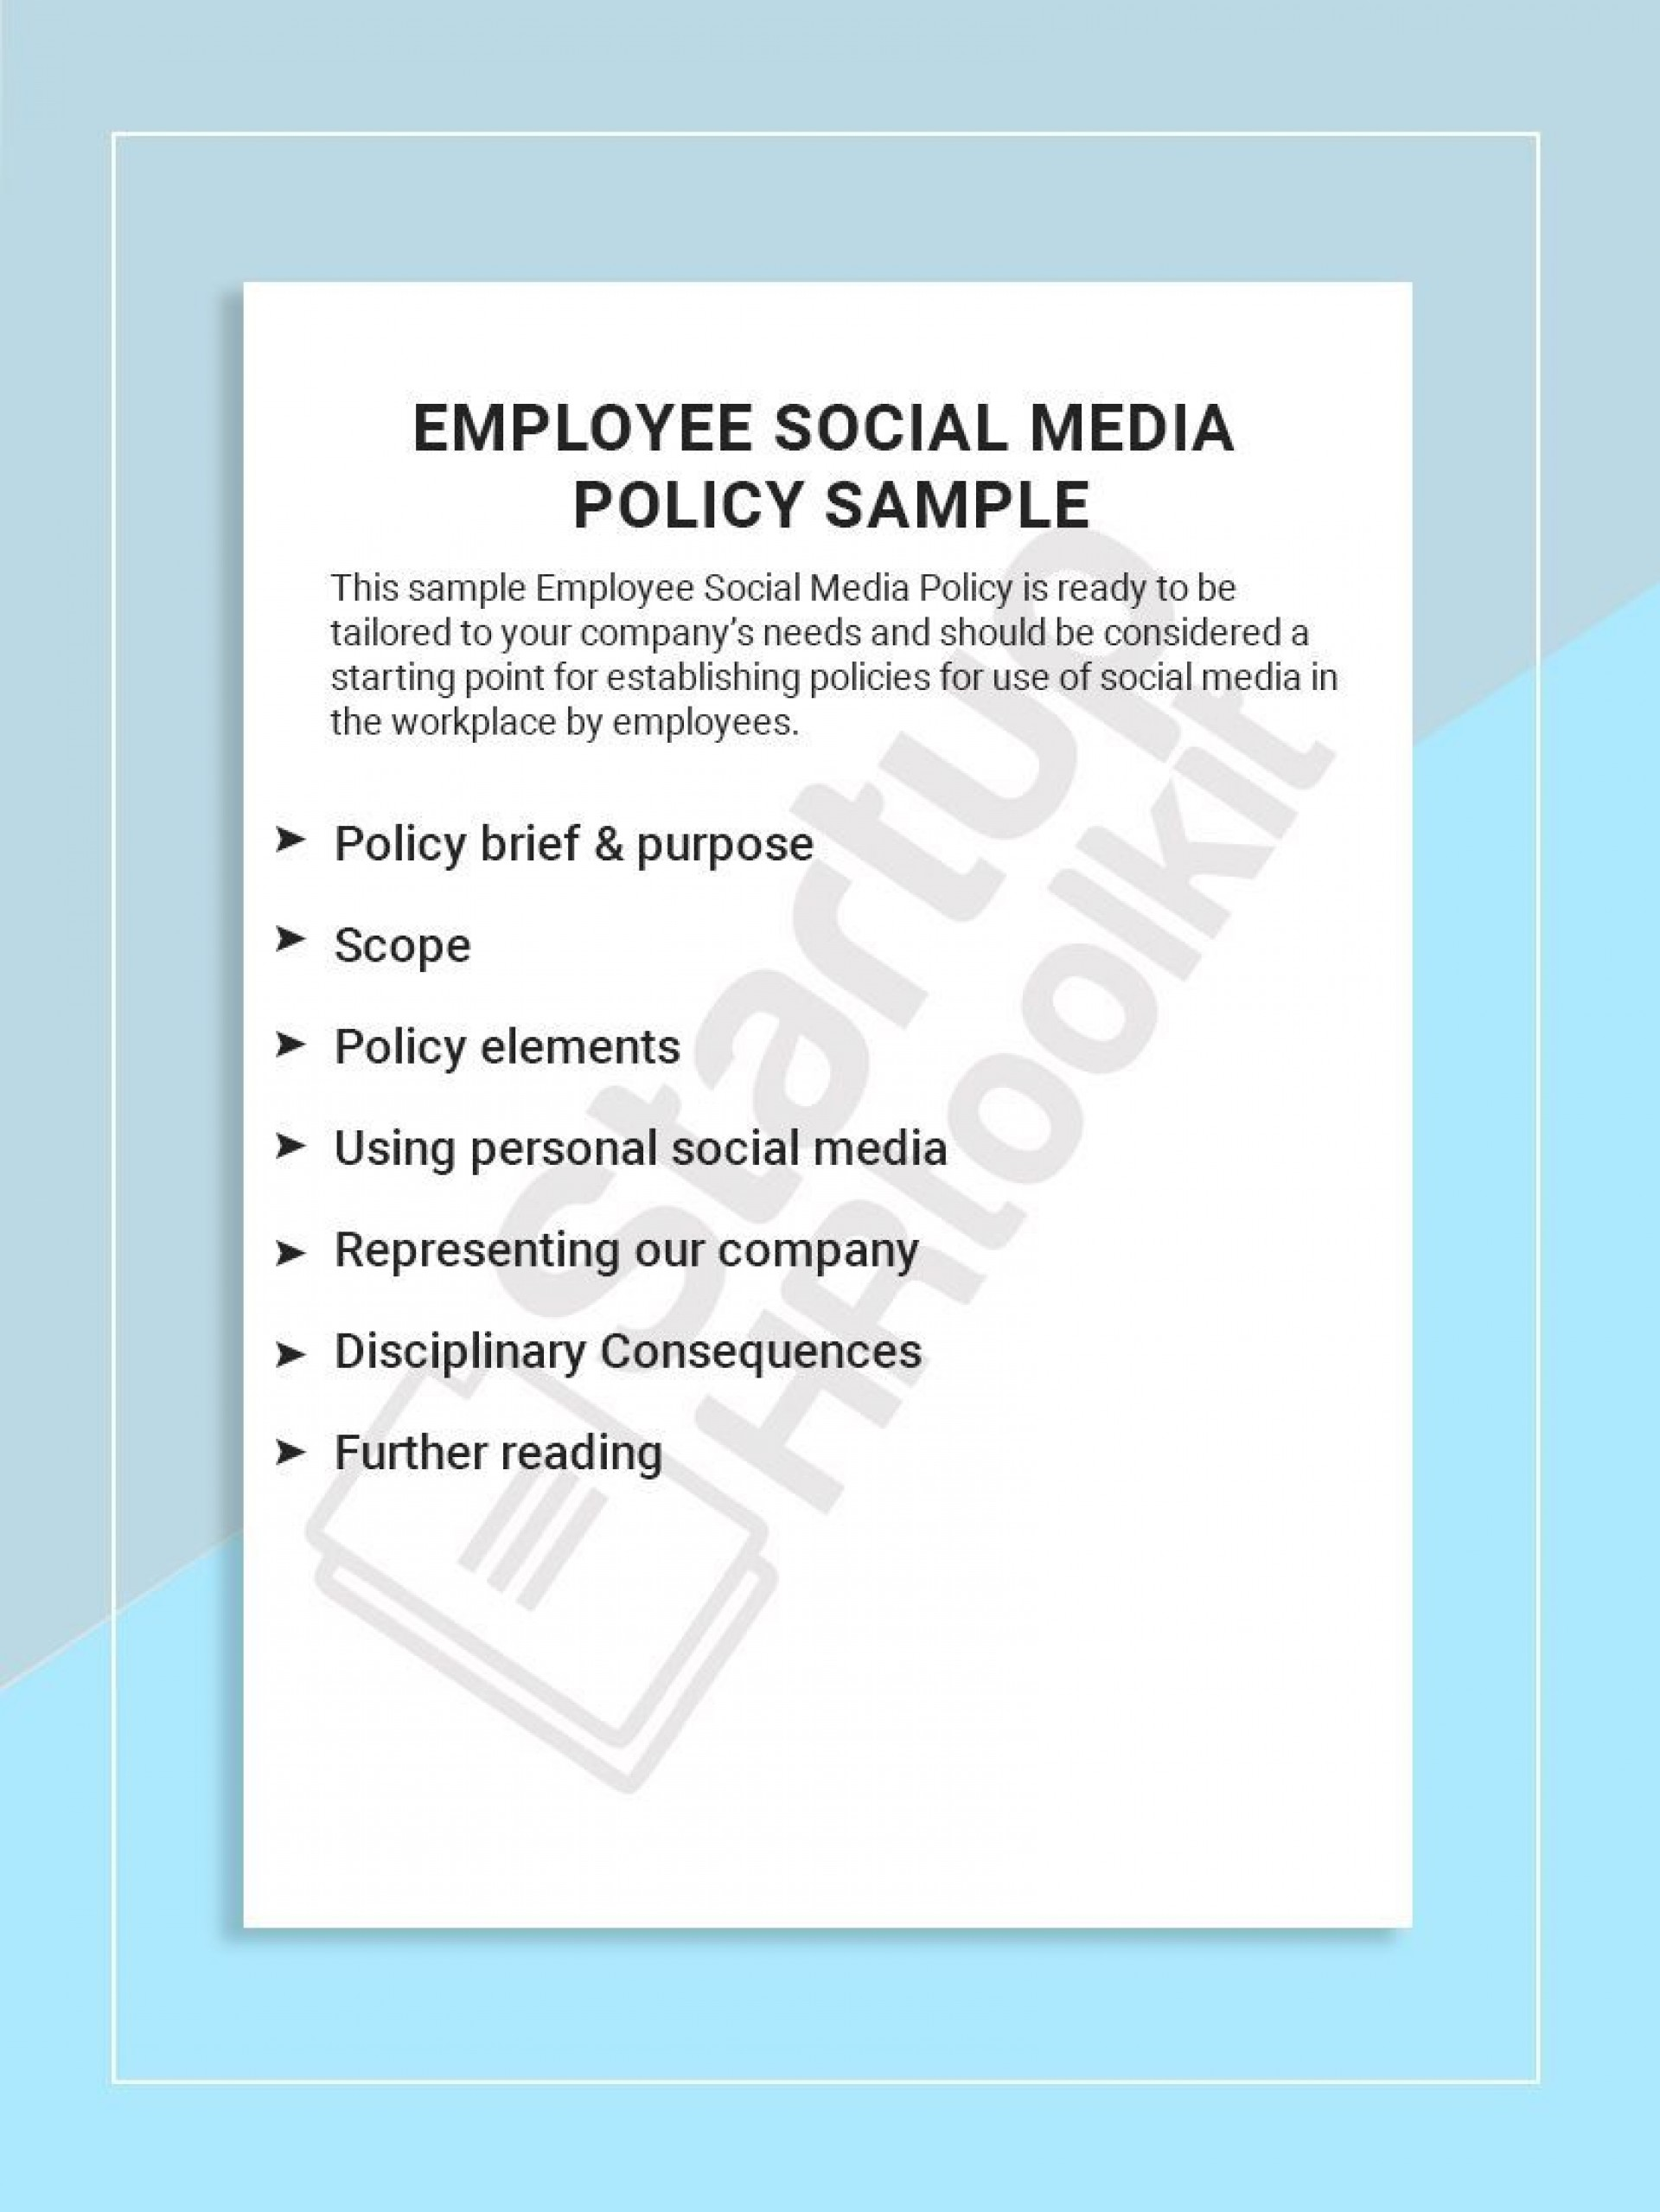 001 Best Social Media Policie Template High Def  Policy For Busines Example Nonprofit Australia Small1920